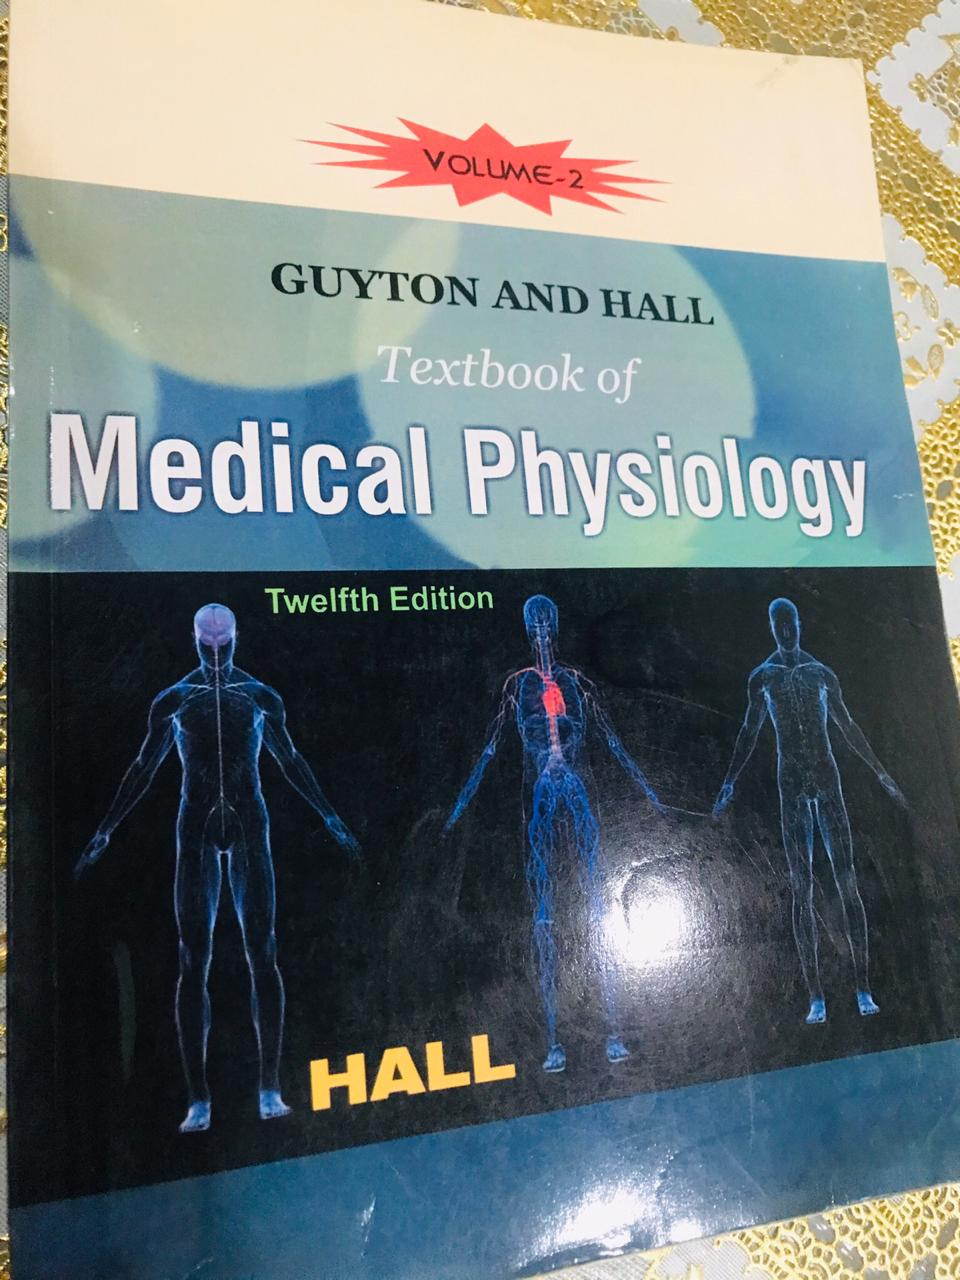 Guyton and hall, medical physiology